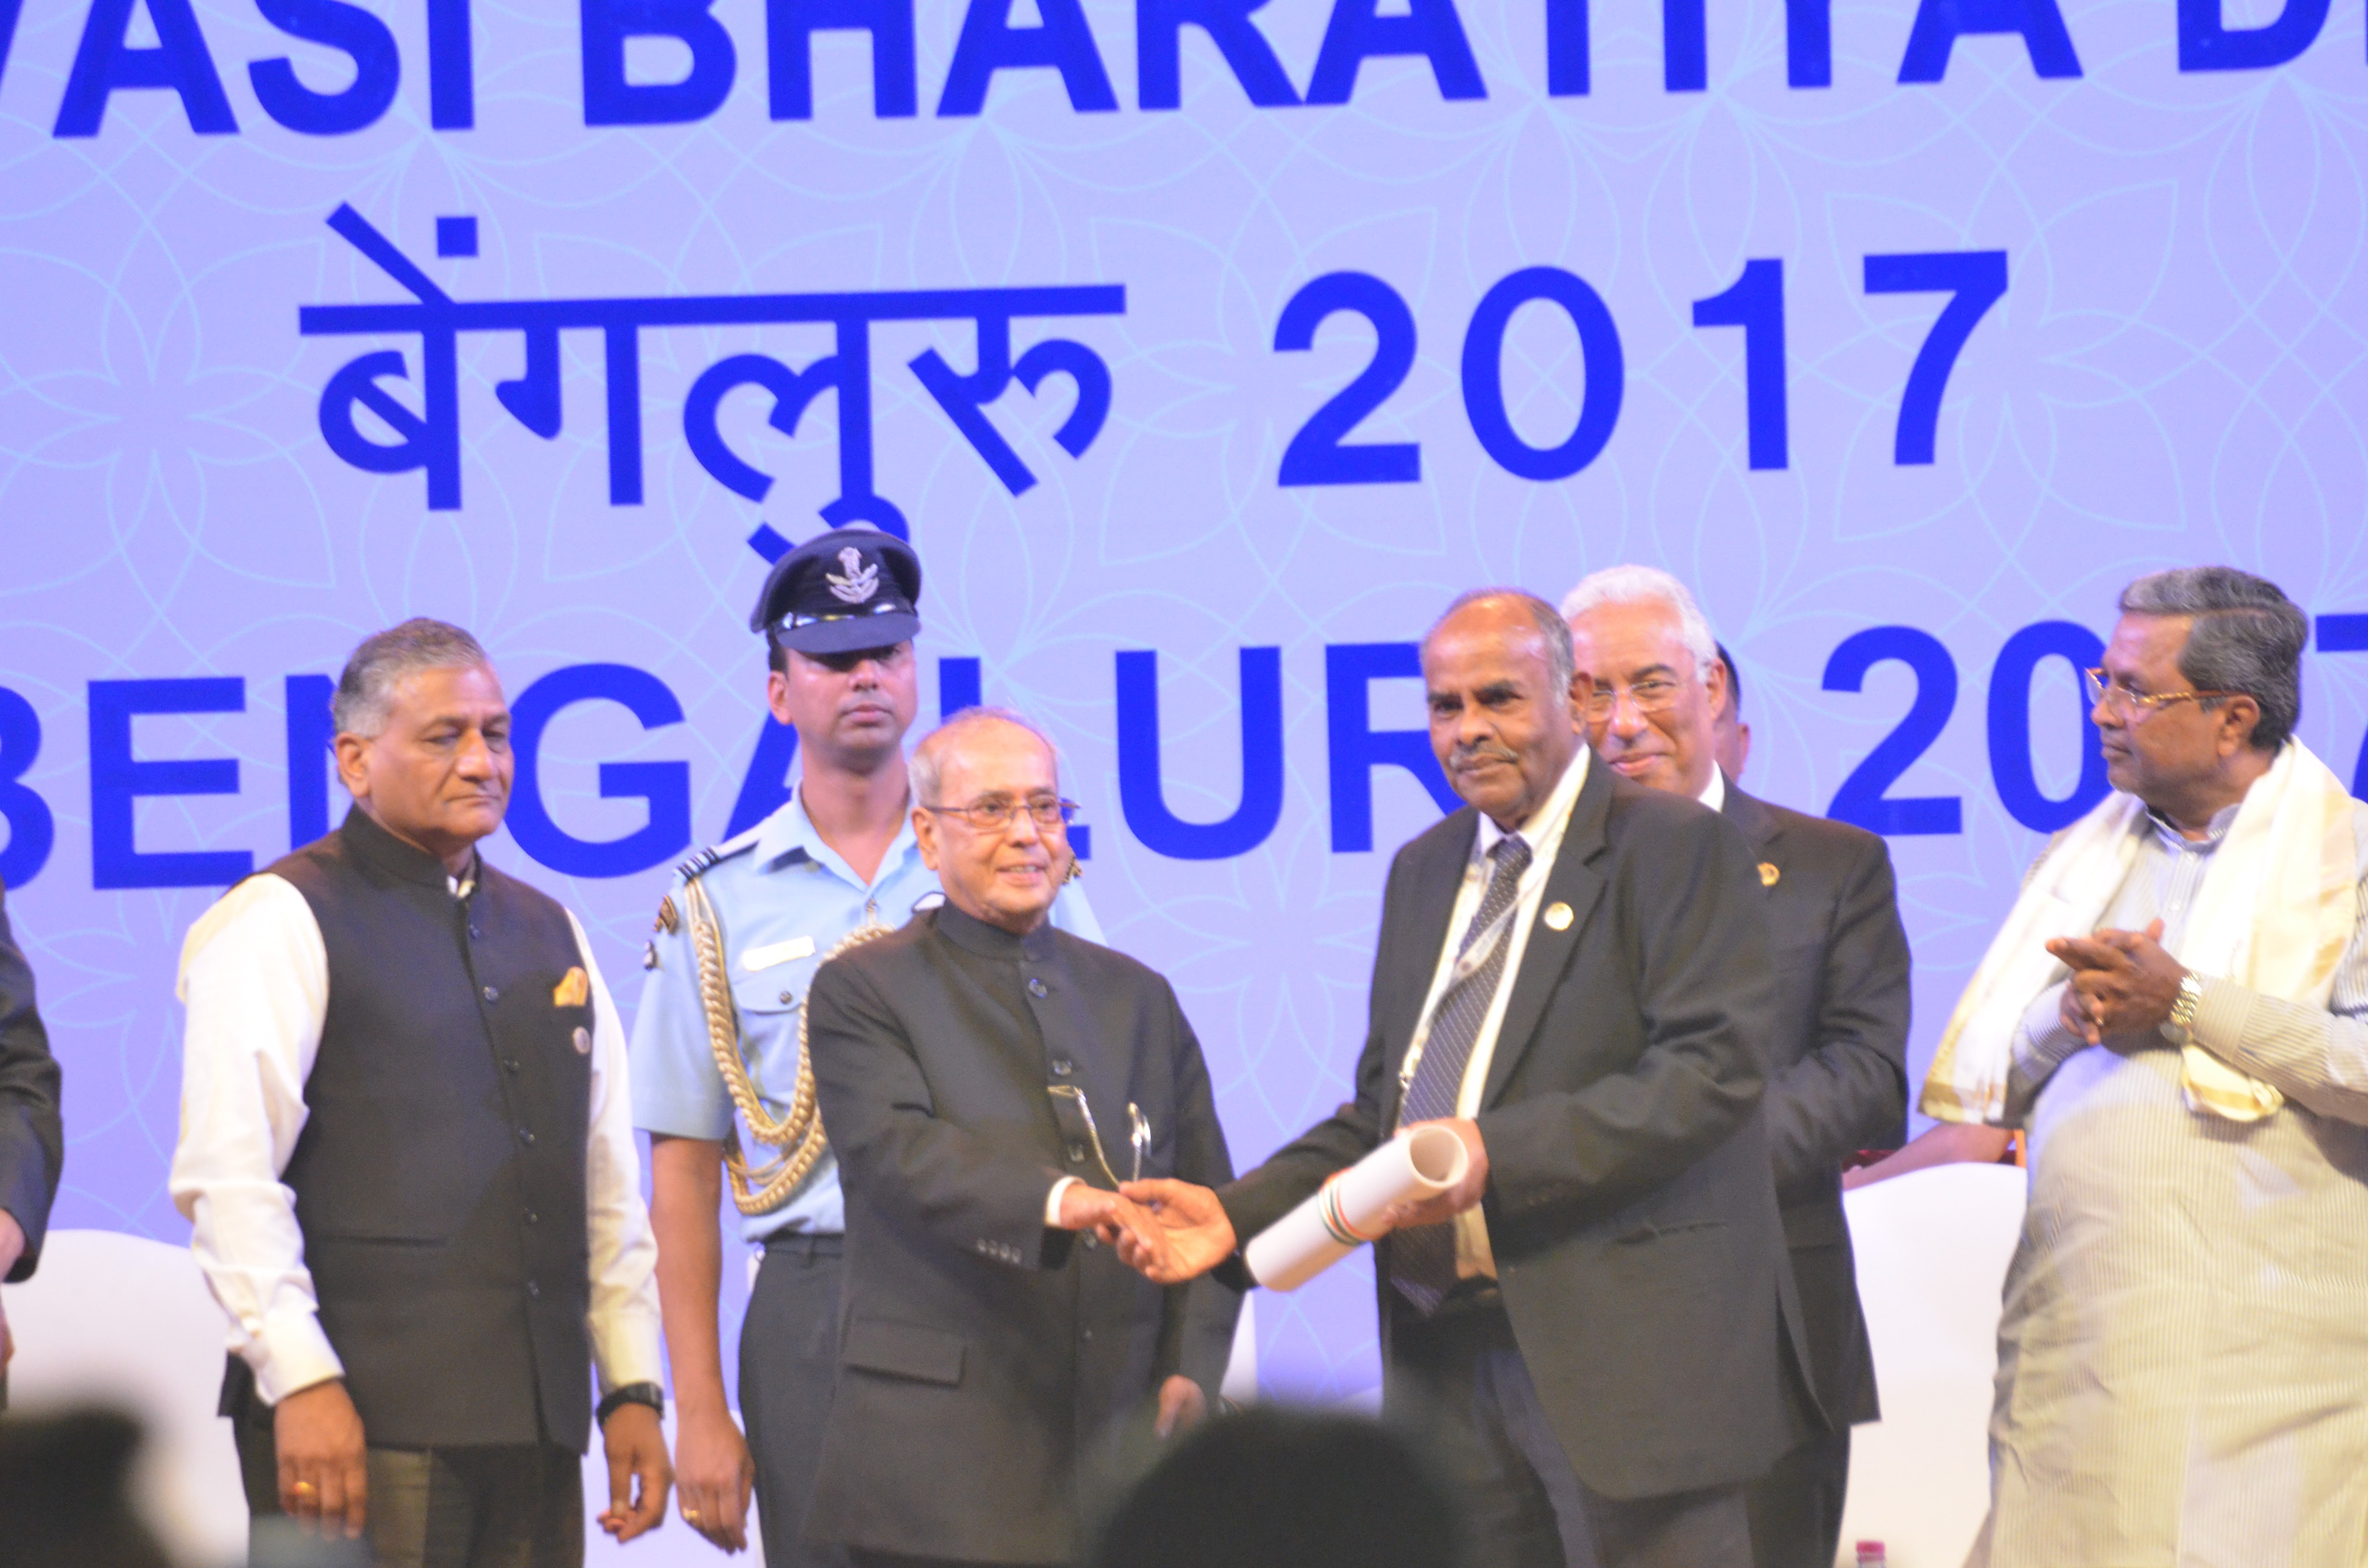 Singapore Indian Association (SIA) was awarded the prestigious Pravasi Bharatiya Samman Award (PBSA) on January 9, 2017 at the Pravasi Bharatiya Divas in Bengaluru for its contribution to the Indian community in Singapore. K Kesavapany, President of SIA went to Bengaluru to receive the award from then President of India Pranab Mukherjee. Photo: Connected to India